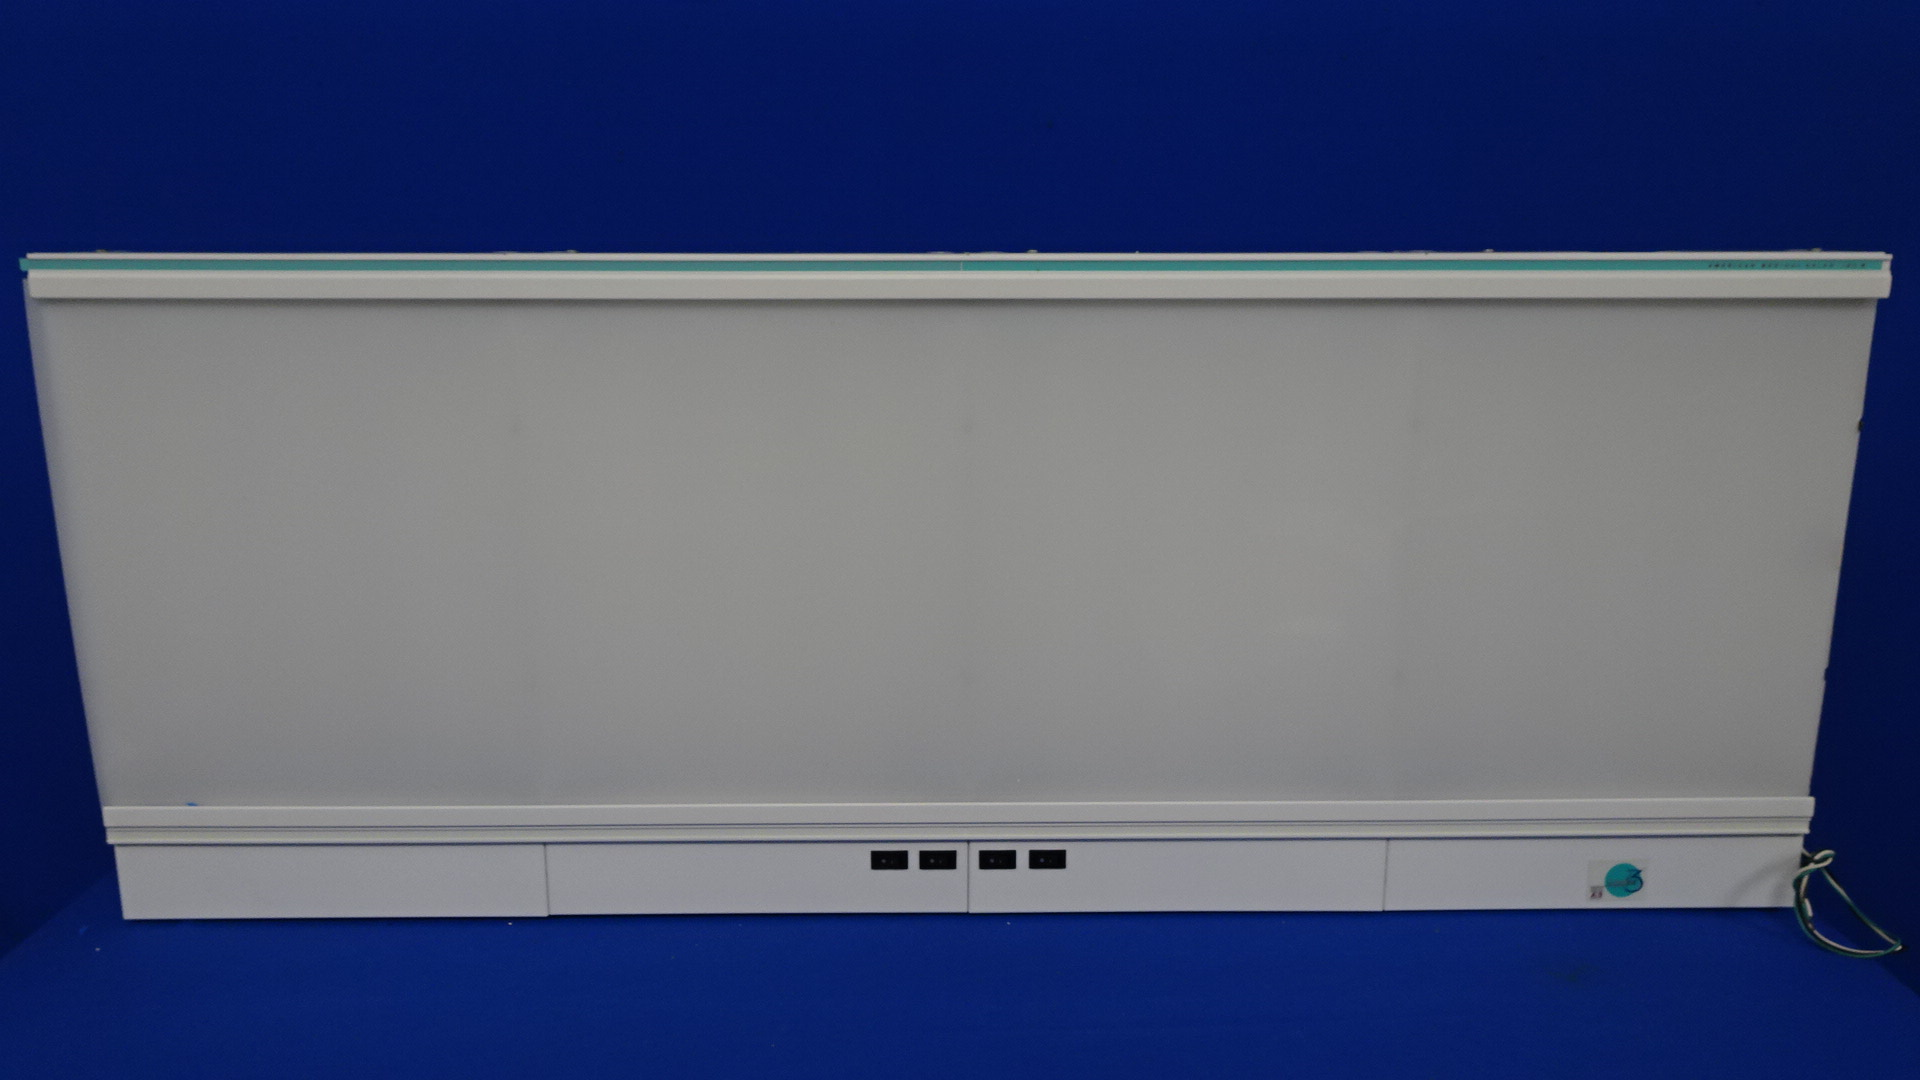 Ams 700 Series Clearvue3 X Ray Four Pannel Viewing Box